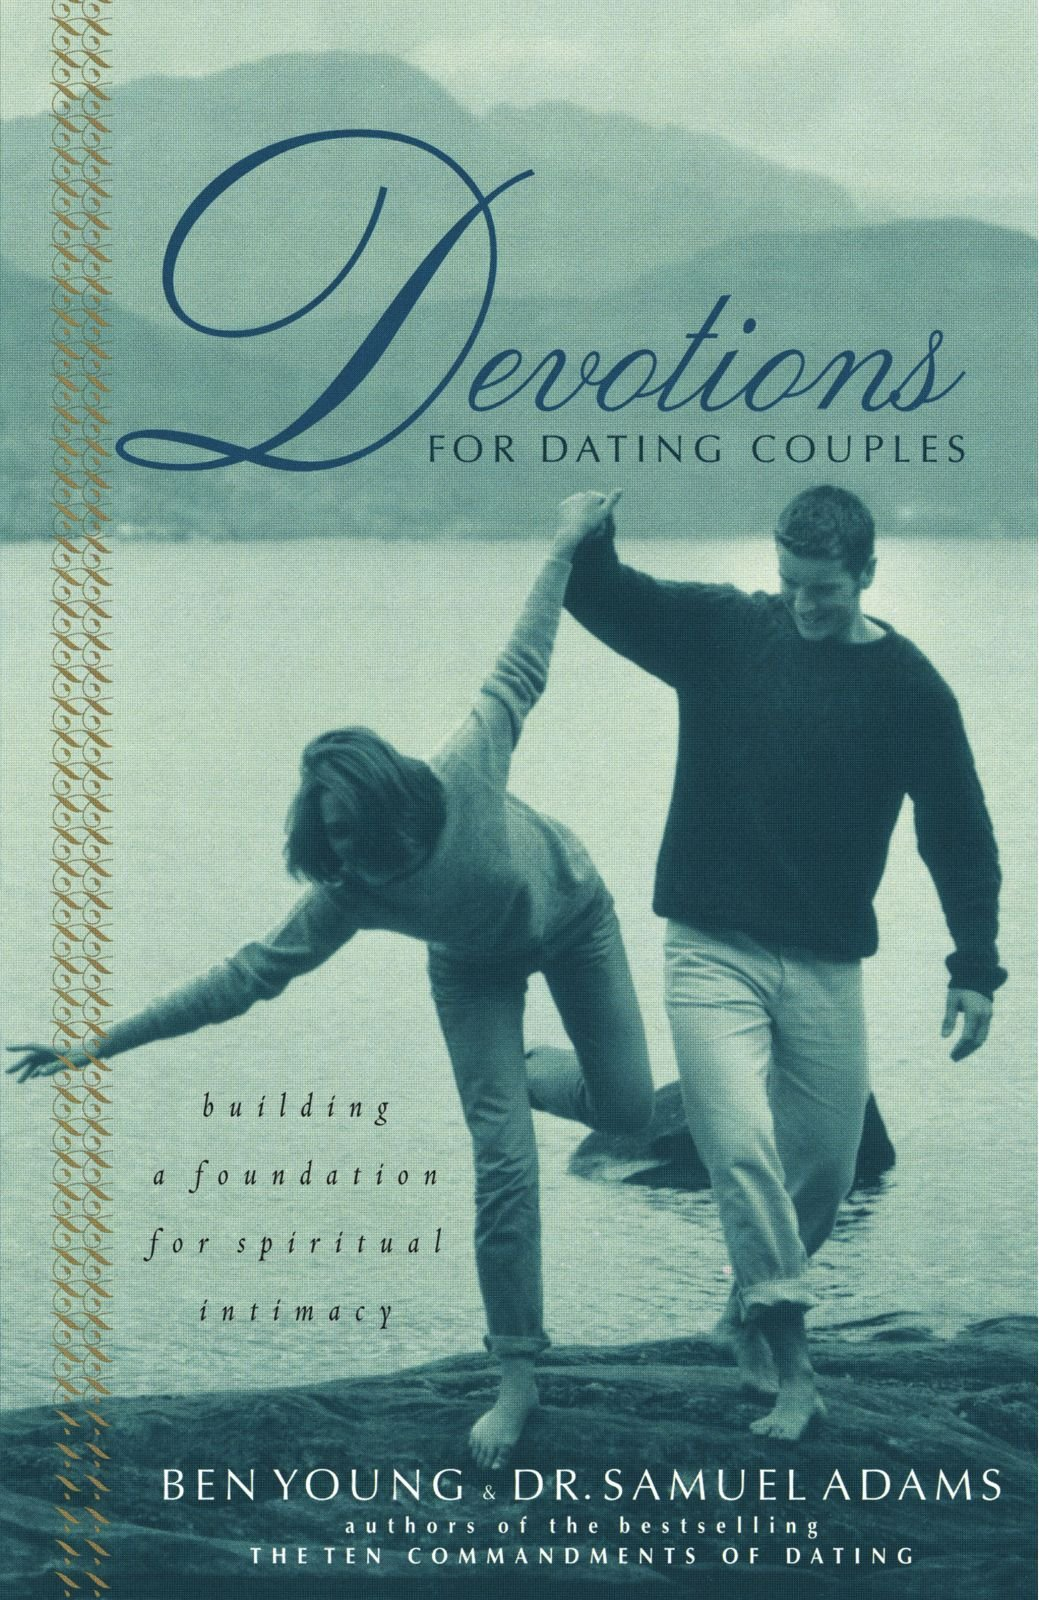 Free bible study for dating couples